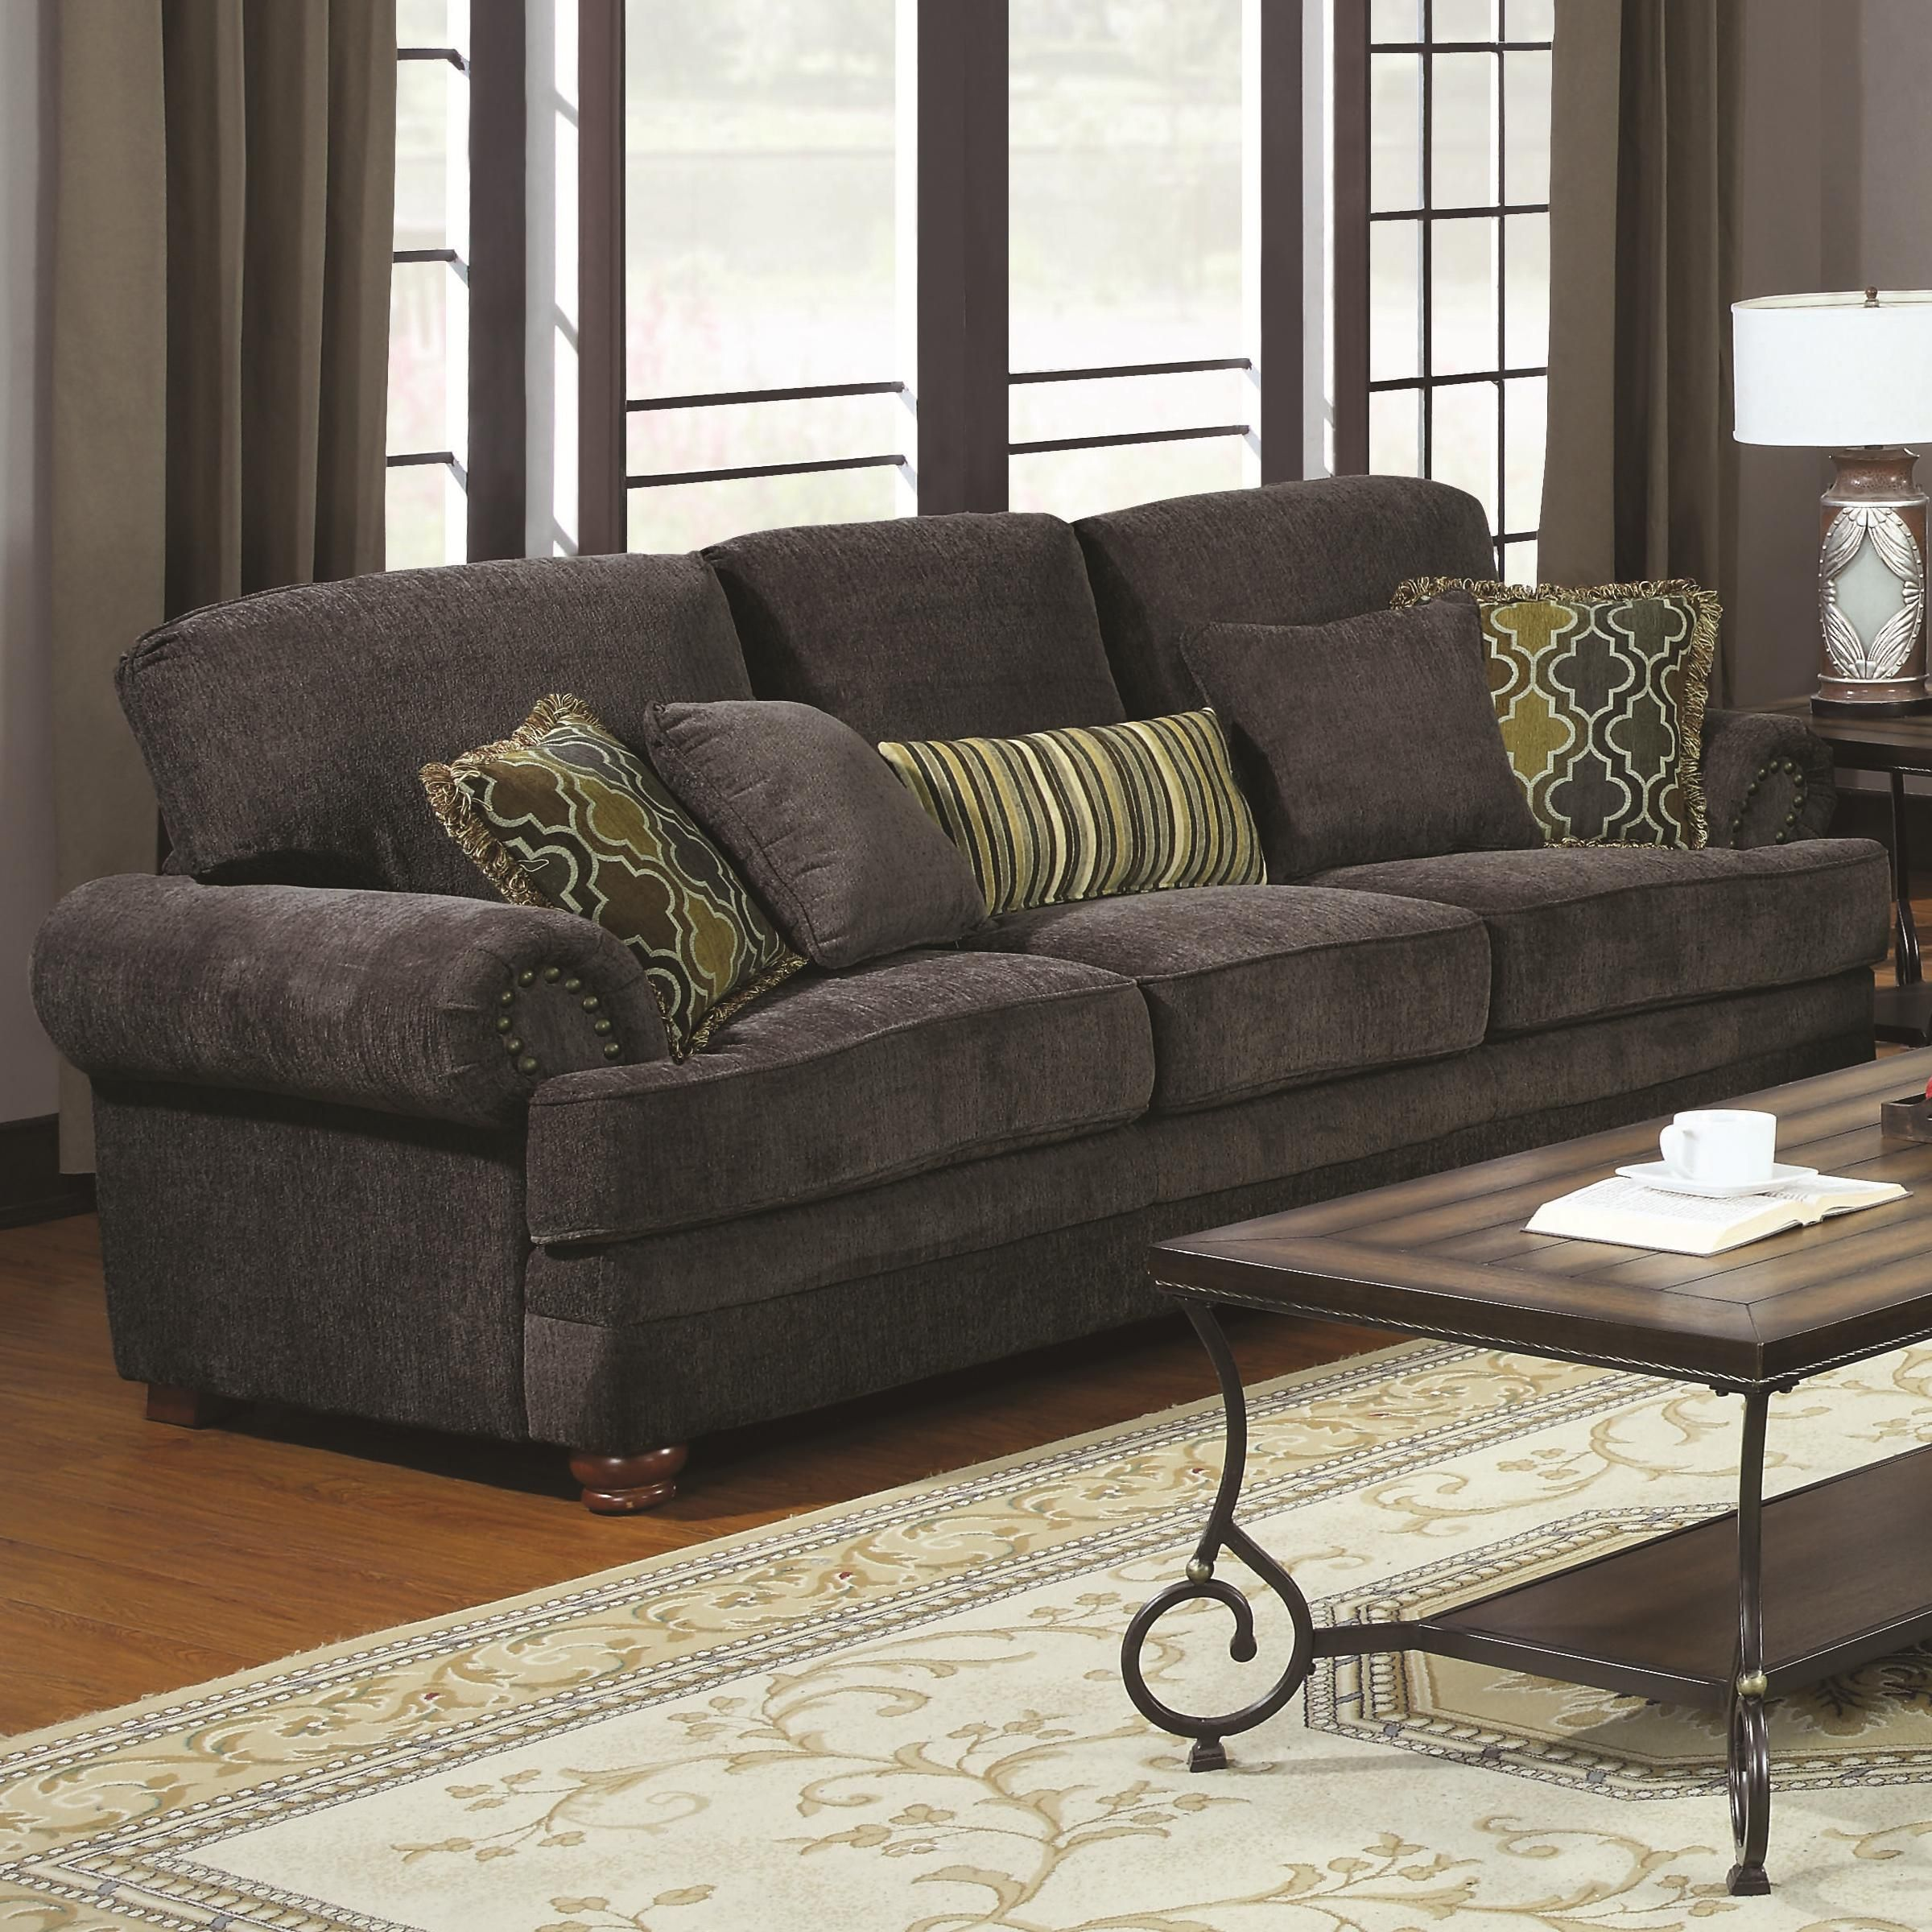 Colton Traditional Grey Sofa With Elegant Design Style By Coaster   Al Mart  Furniture